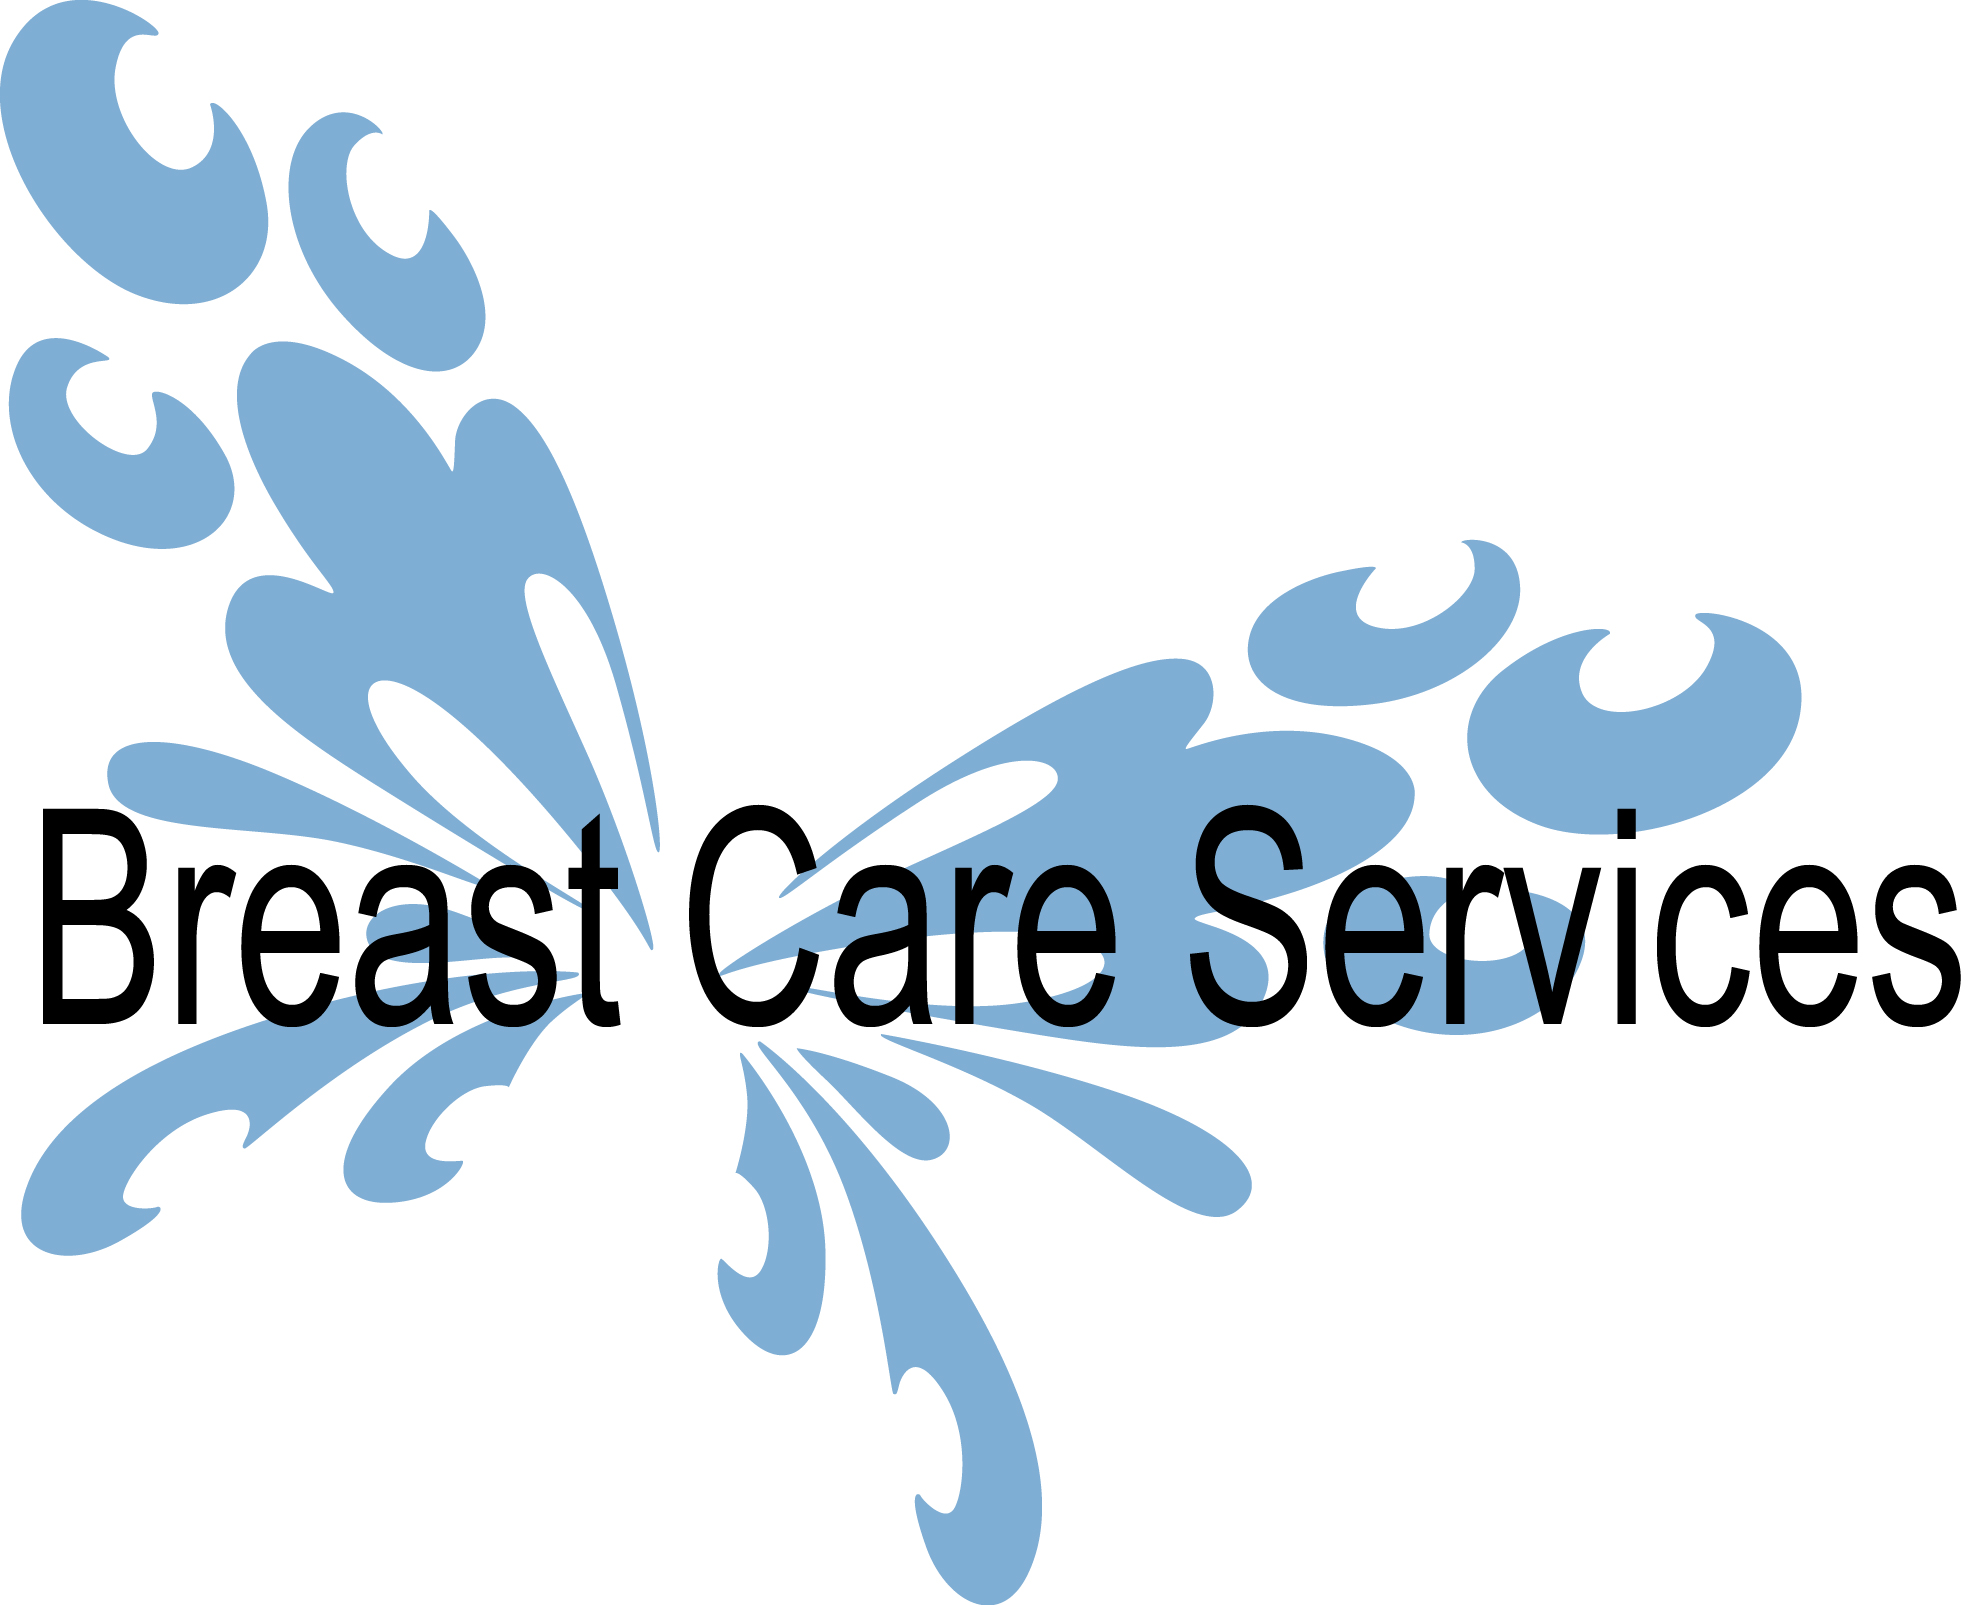 Breast Care Services